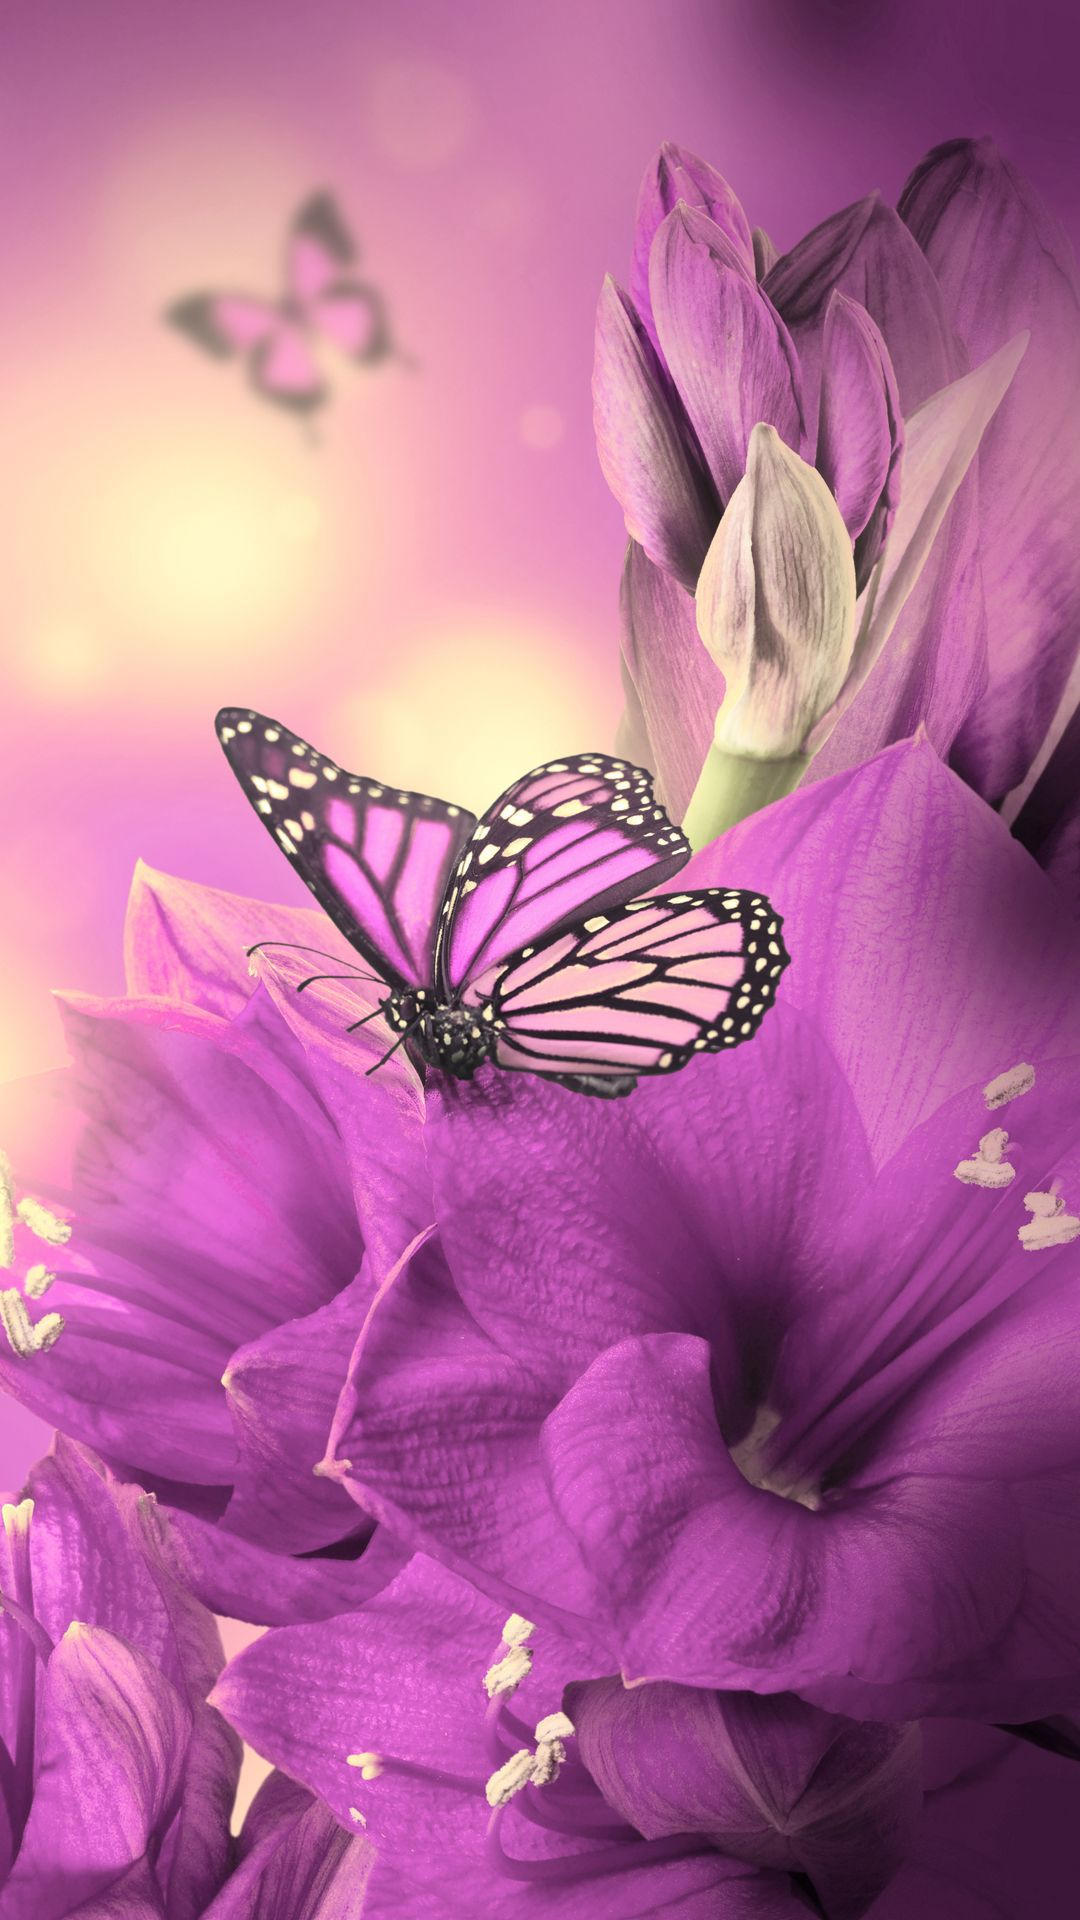 Download Wallpaper Iphone Butterfly 62493 Hd